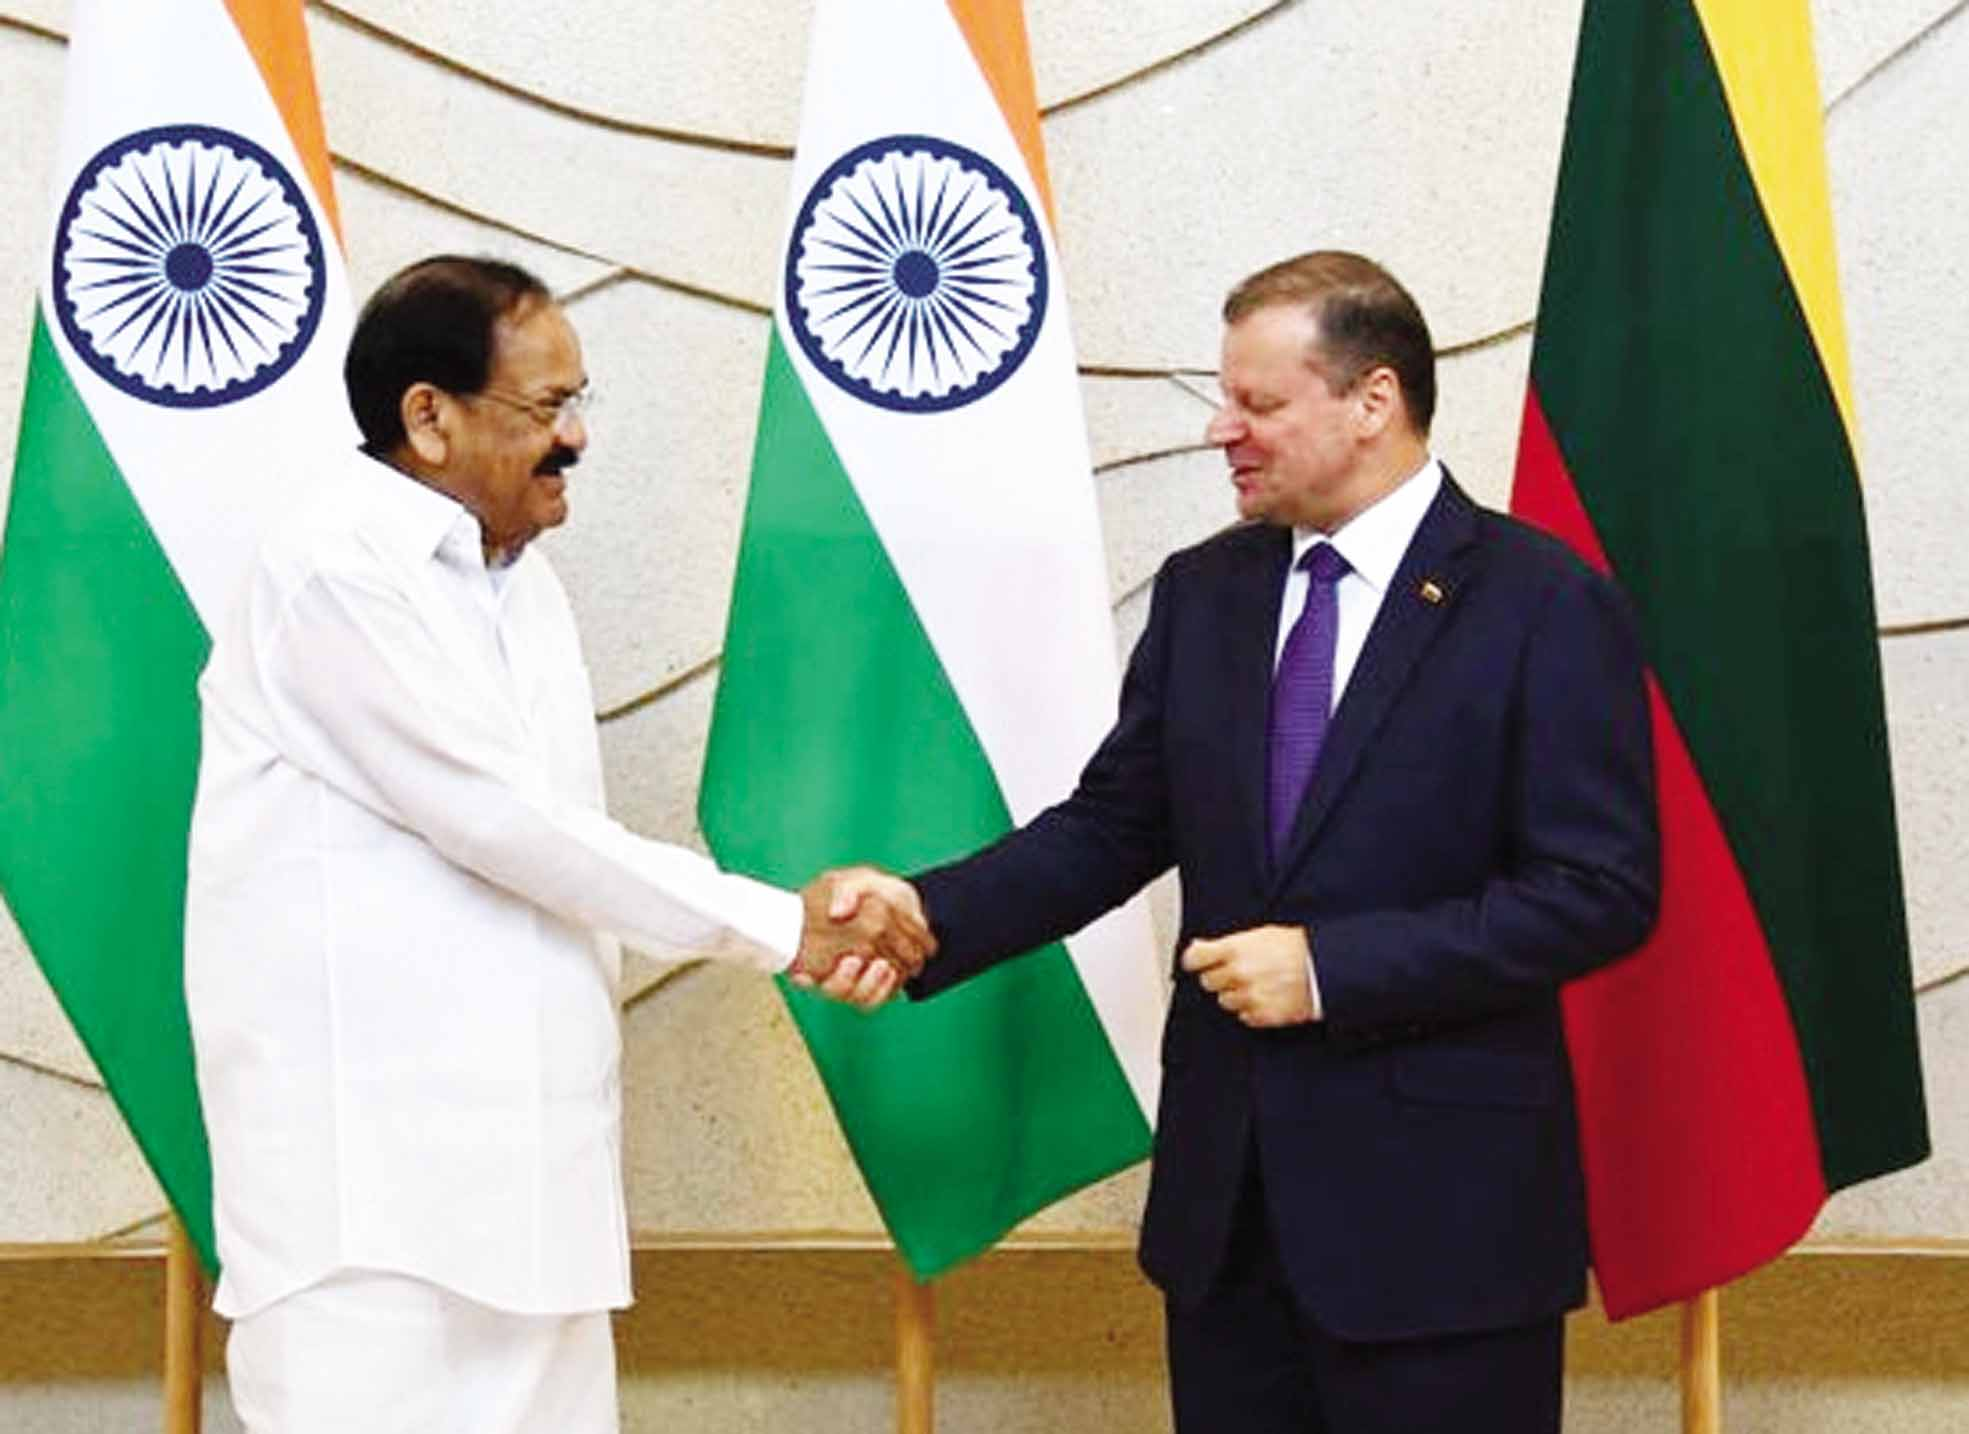 Vice President M Venkaiah Naidu met Prime Minister of Lithuania, Saulius Skvernelis & discussed strengthening of ties across sectors between the two countries.